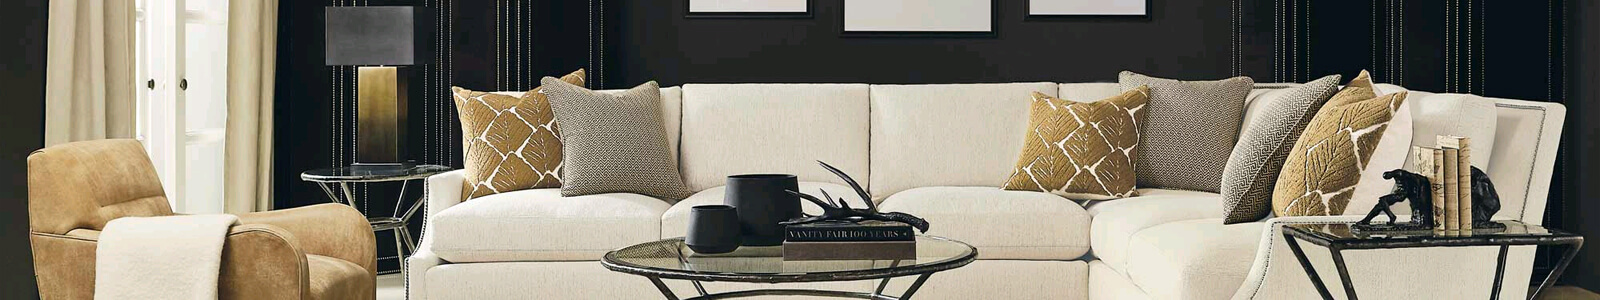 Bernhardt Furniture Banner